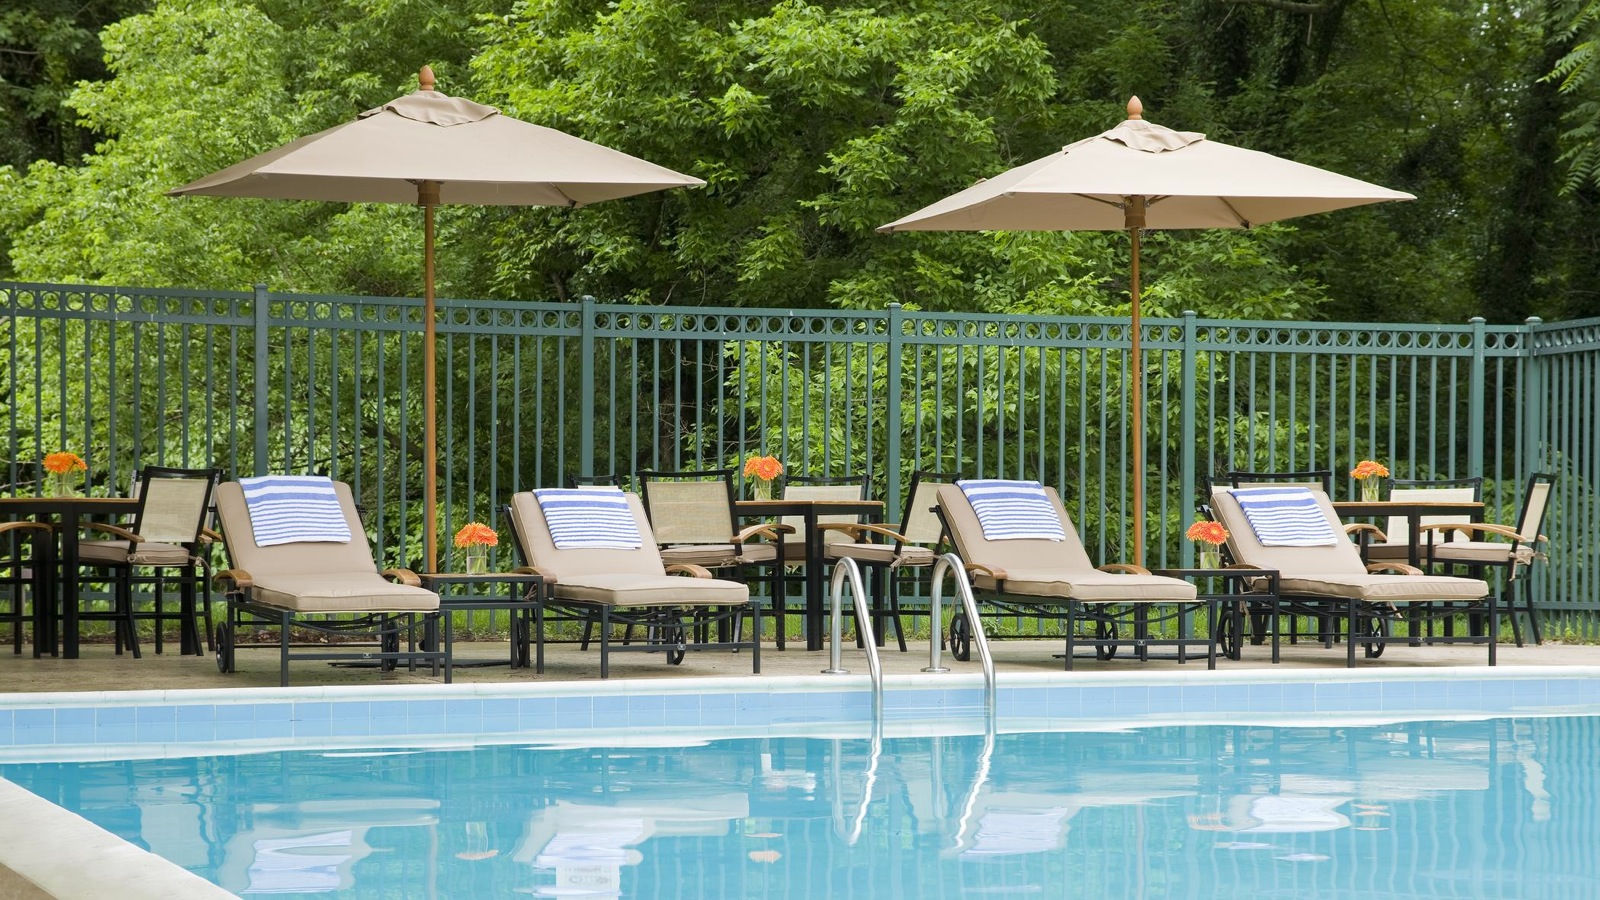 Sheraton Columbia Town Center Hotel | Hotel Features - Outdoor Pool